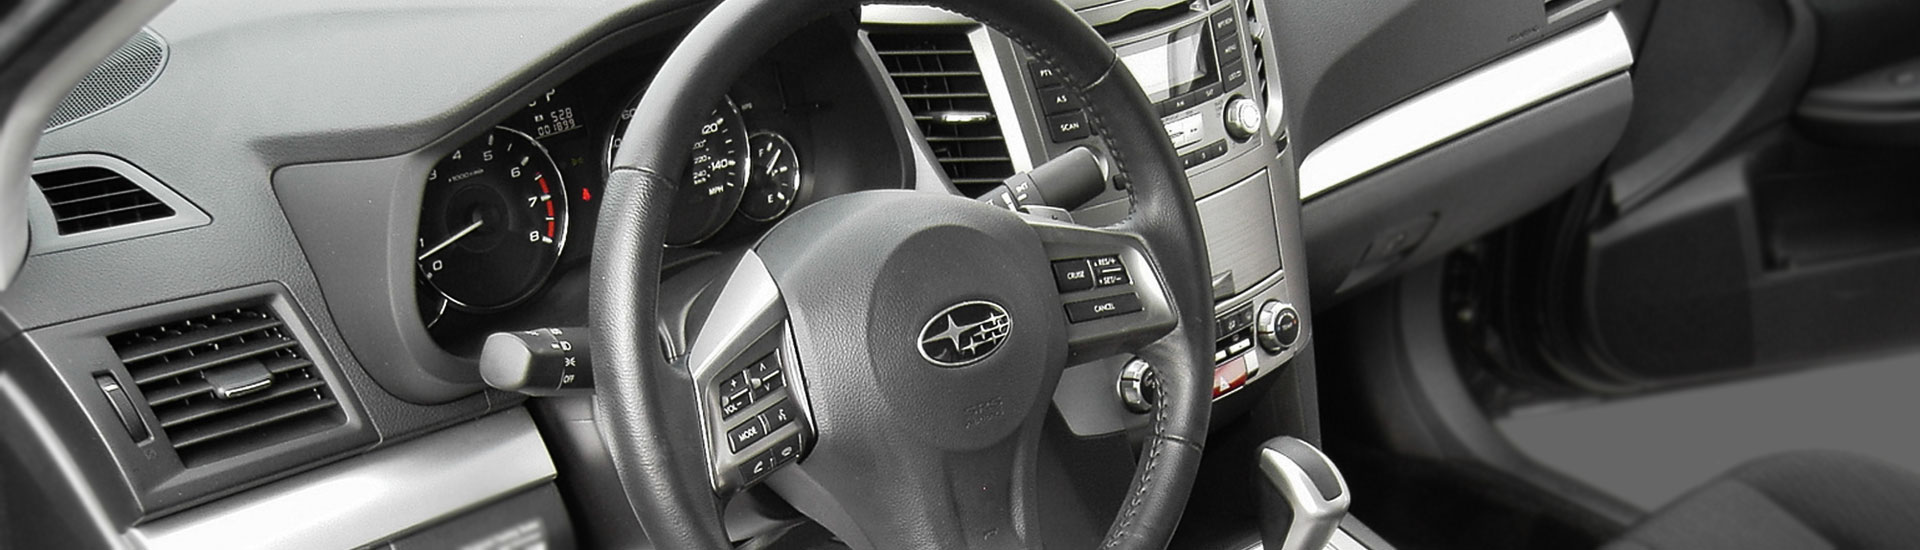 Subaru Justy Custom Dash Kits